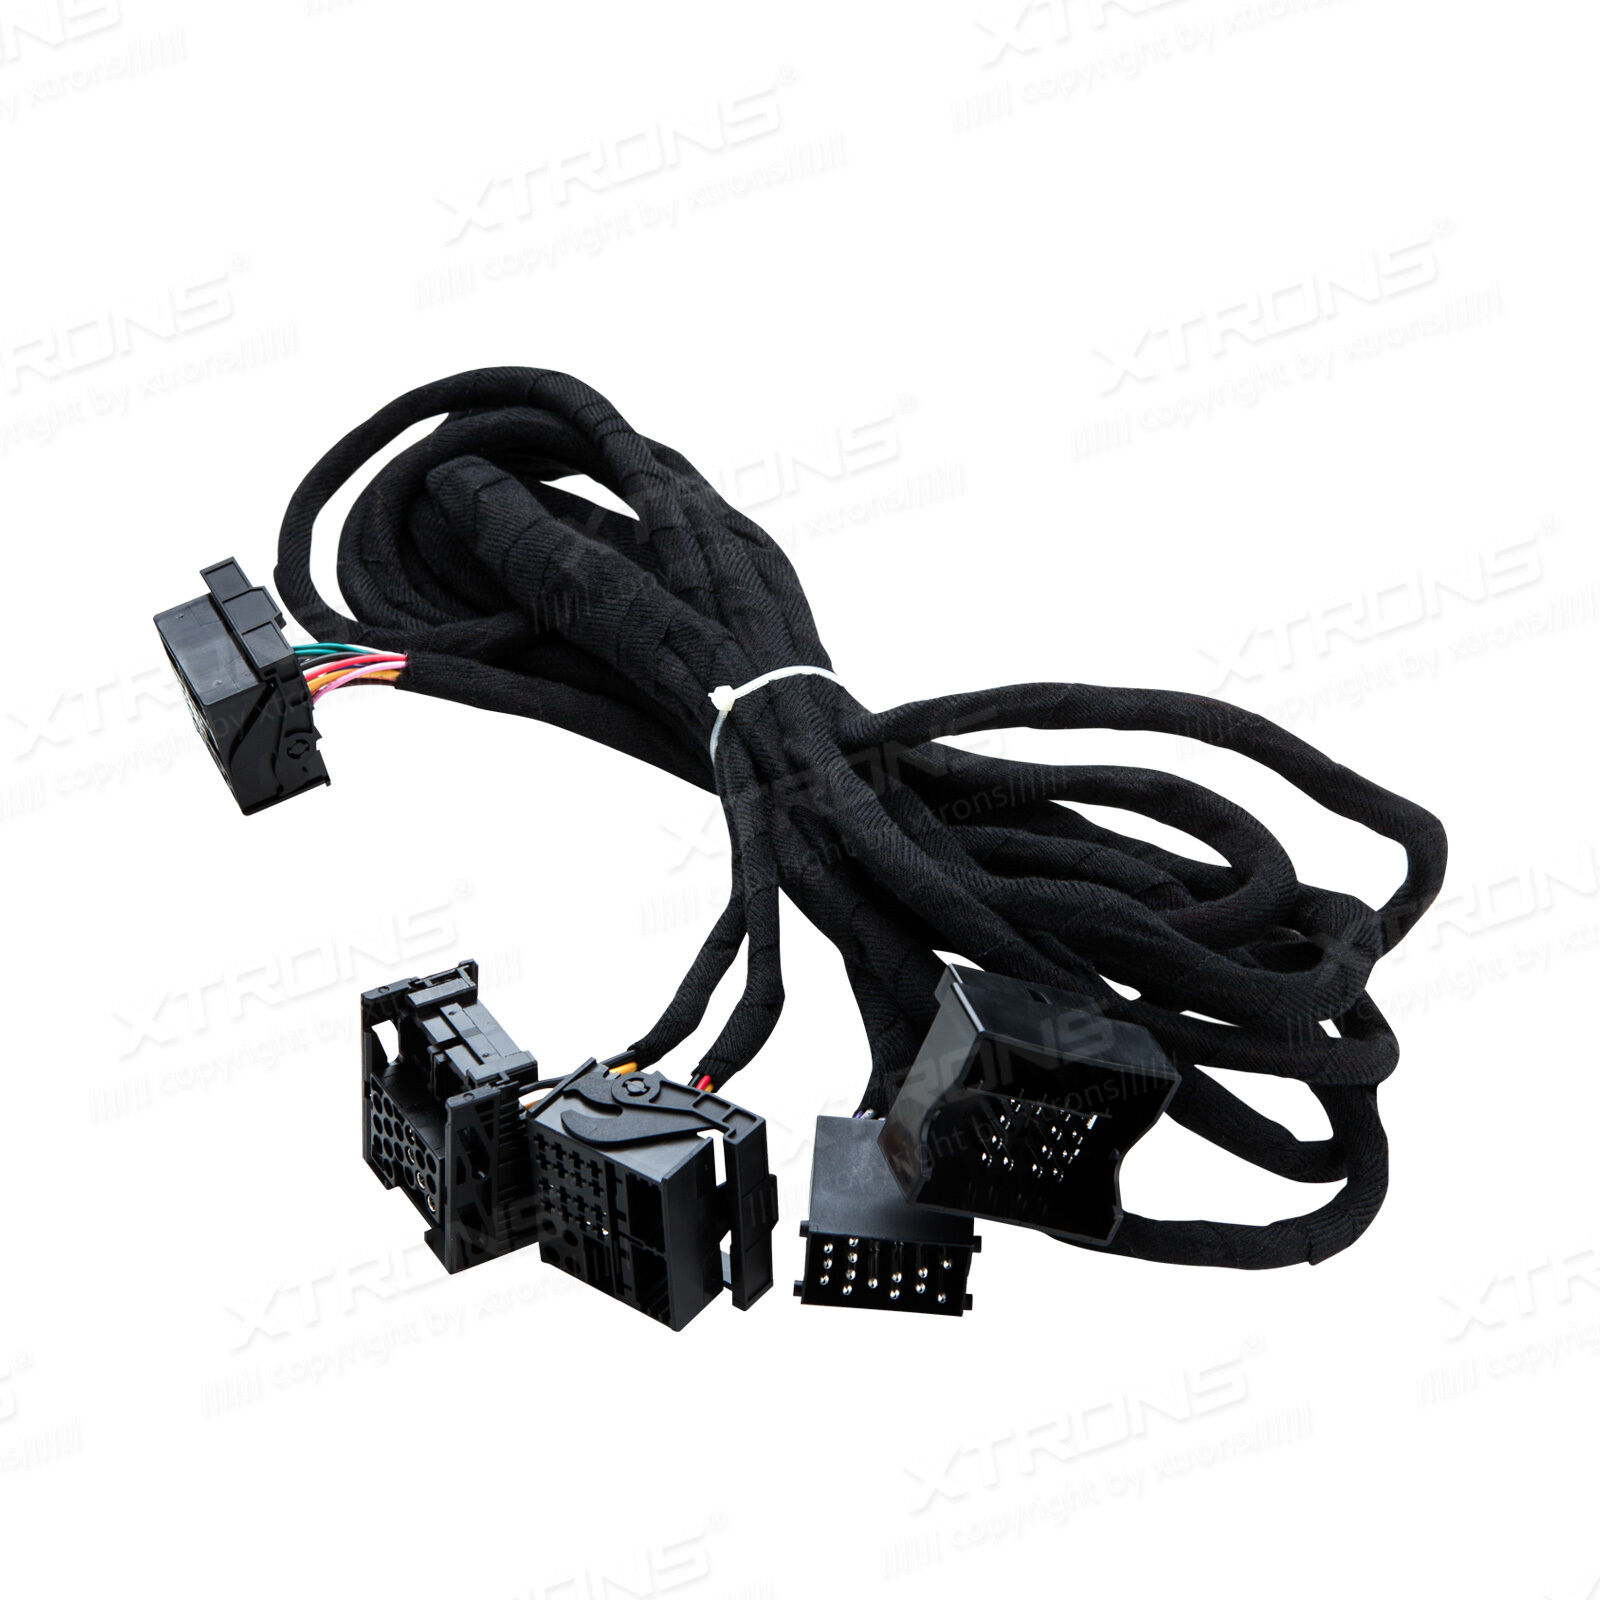 s l1600 universal standard car audio and video wire harnesses ebay universal radio wiring harness at aneh.co